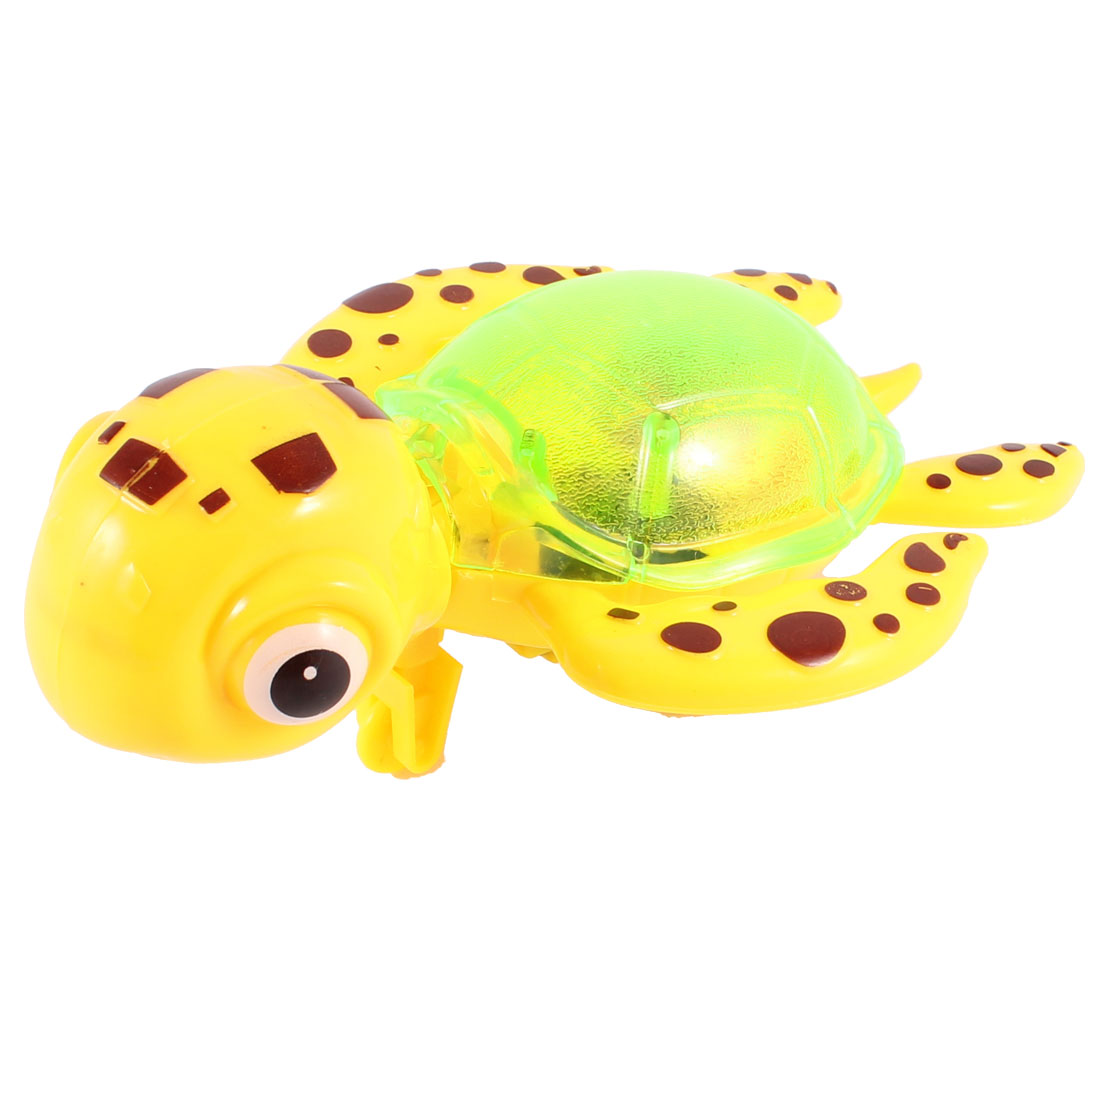 Light Green Yellow Body Tail Pull String Plastic Tortoise Toy for Kids